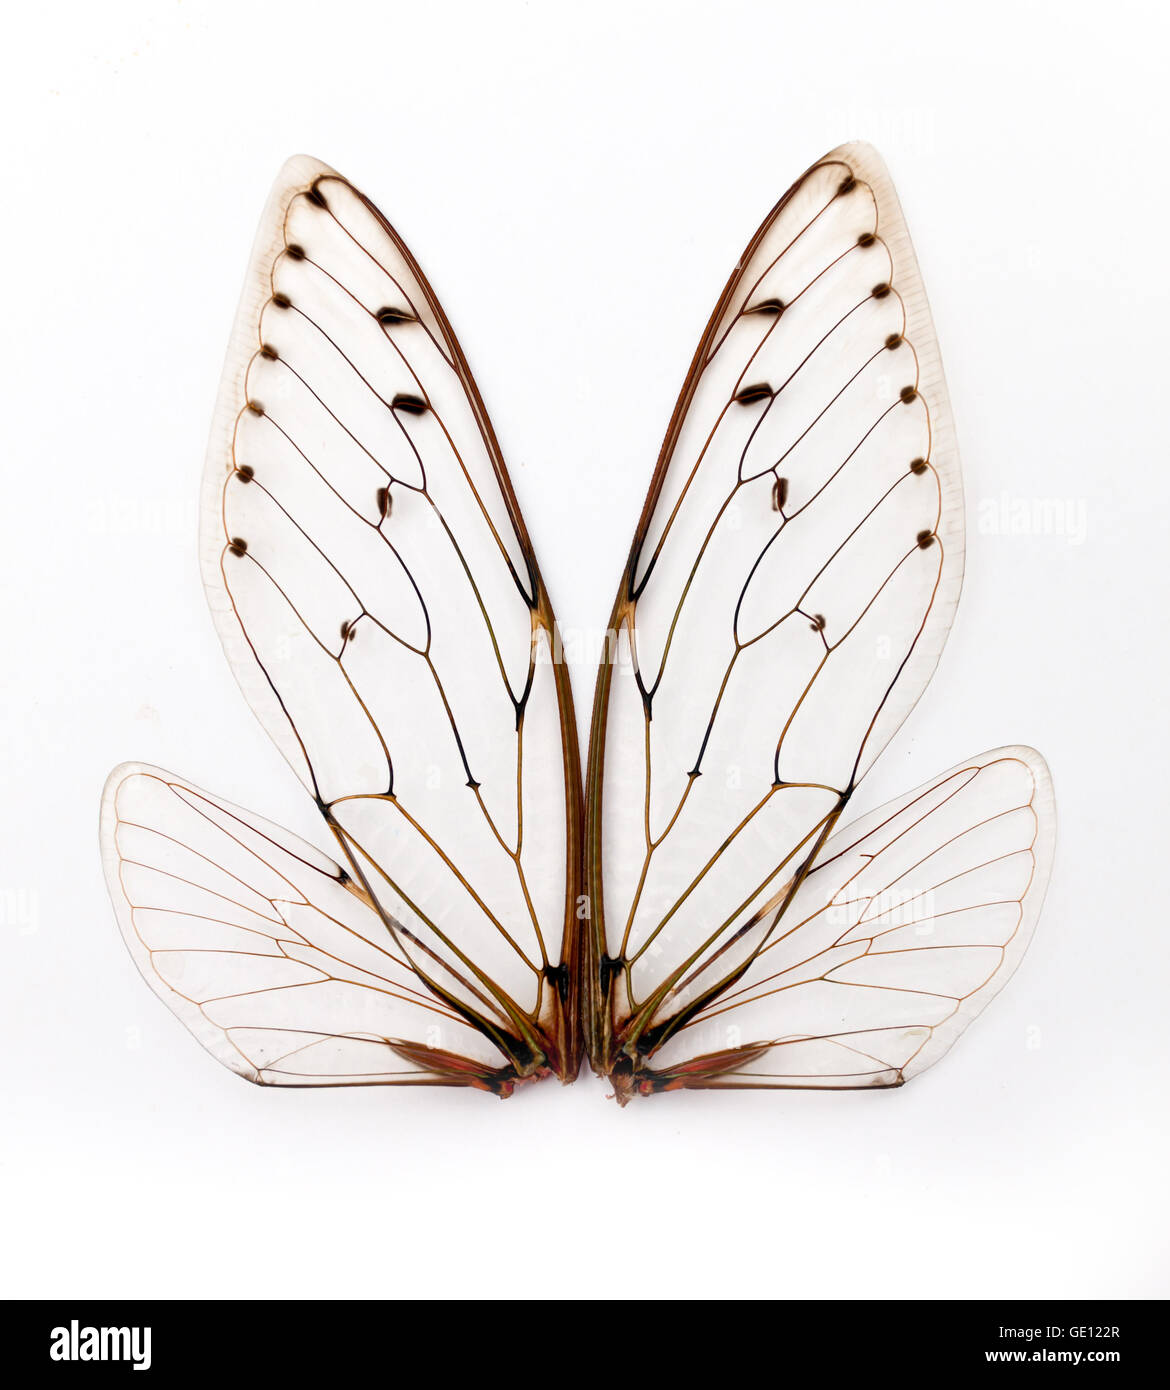 A pair of cicada insect  wings - Stock Image